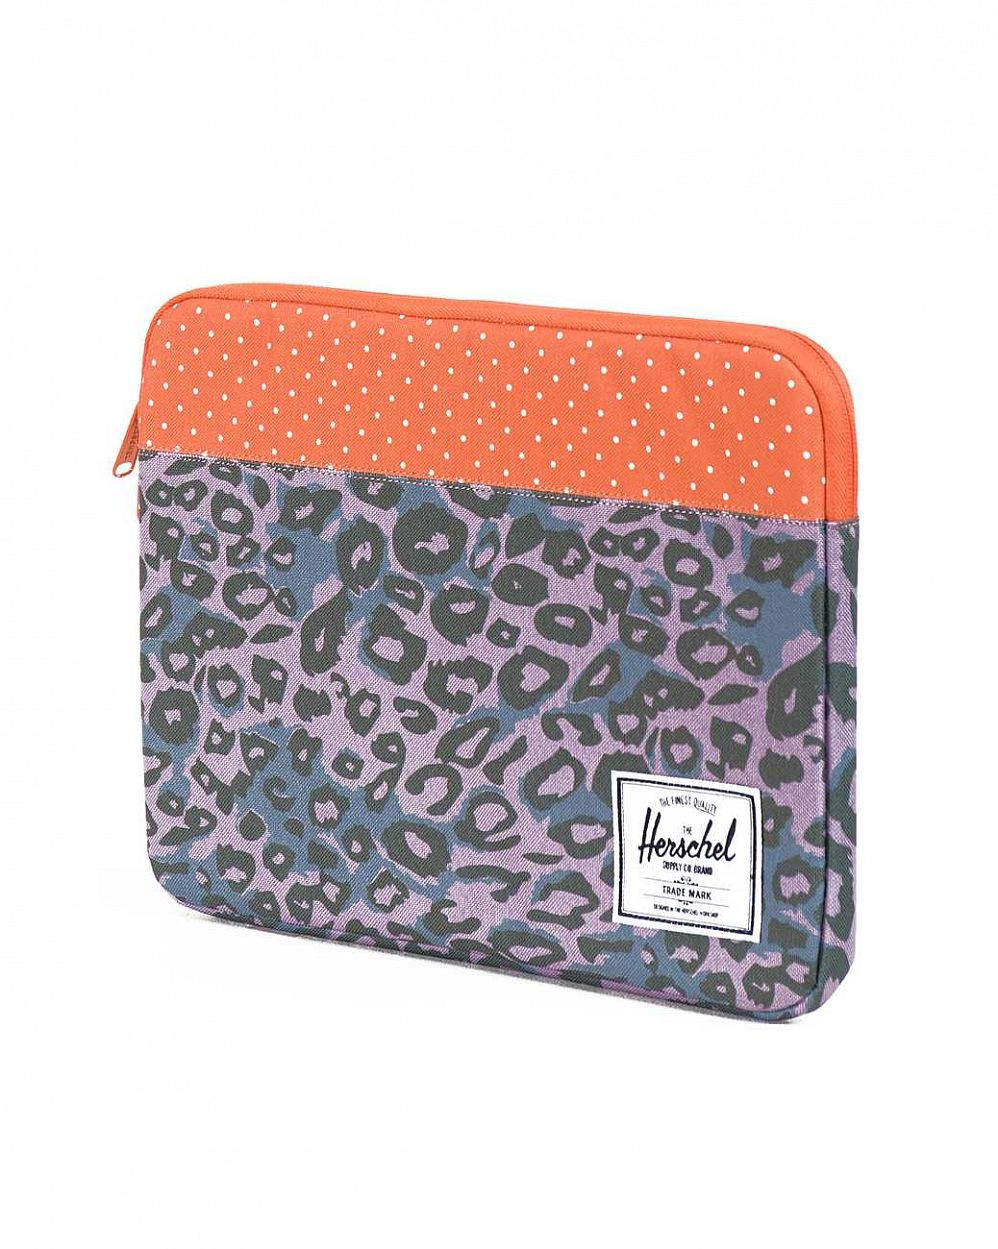 Чехол Herschel Anchor Sleeve для 11'' Macbook Purple Leopard Orange Polka Dot интернет-магазин в Москве